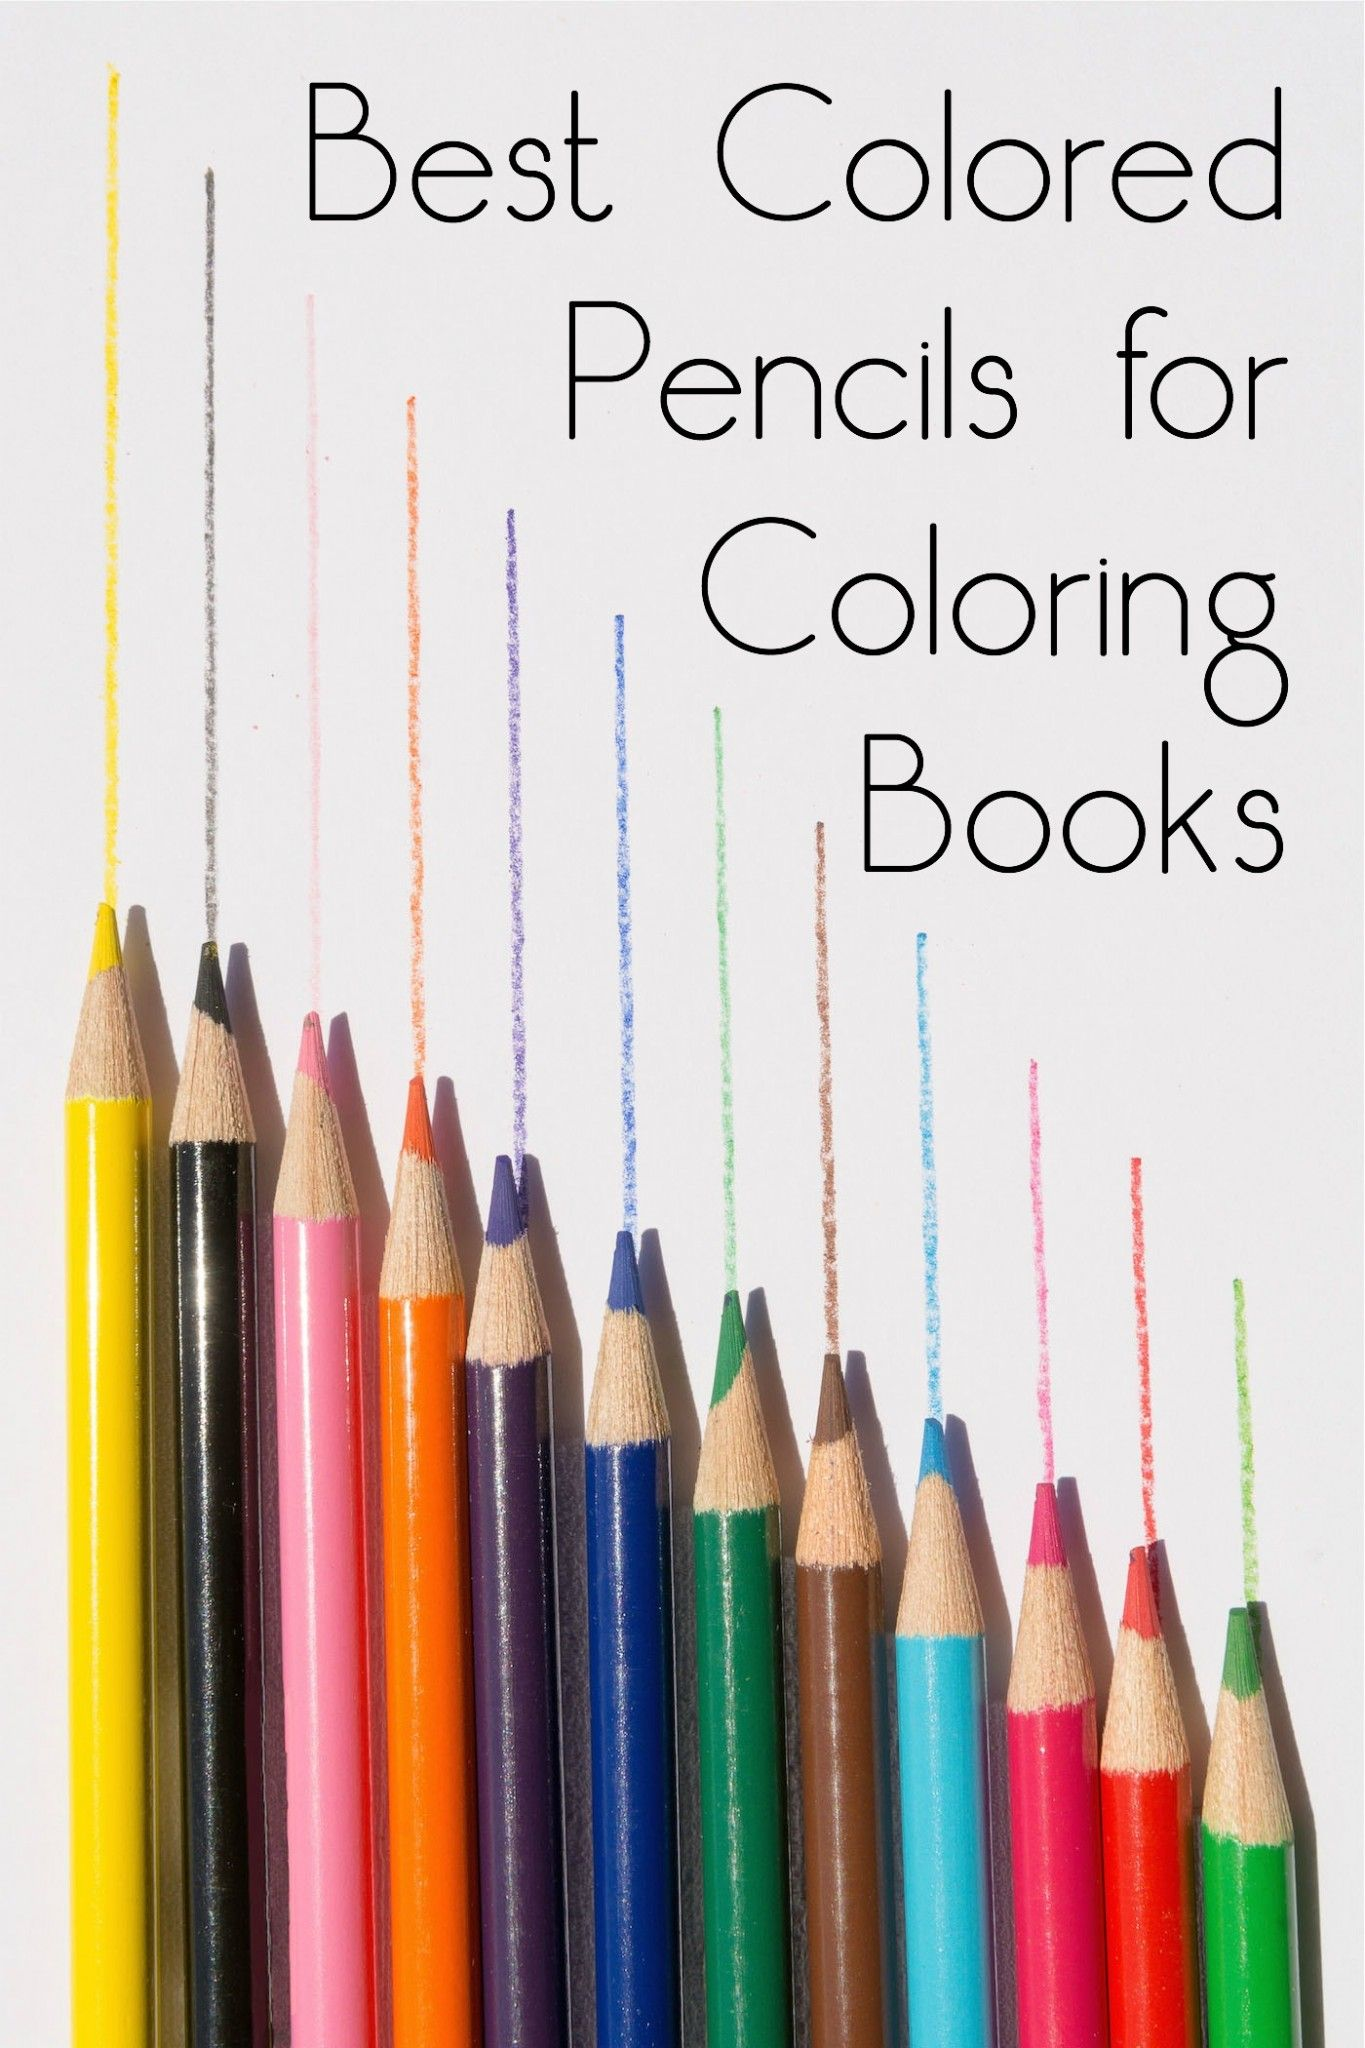 Best Colored Pencils for Coloring Books | Colored pencils, Books and ...